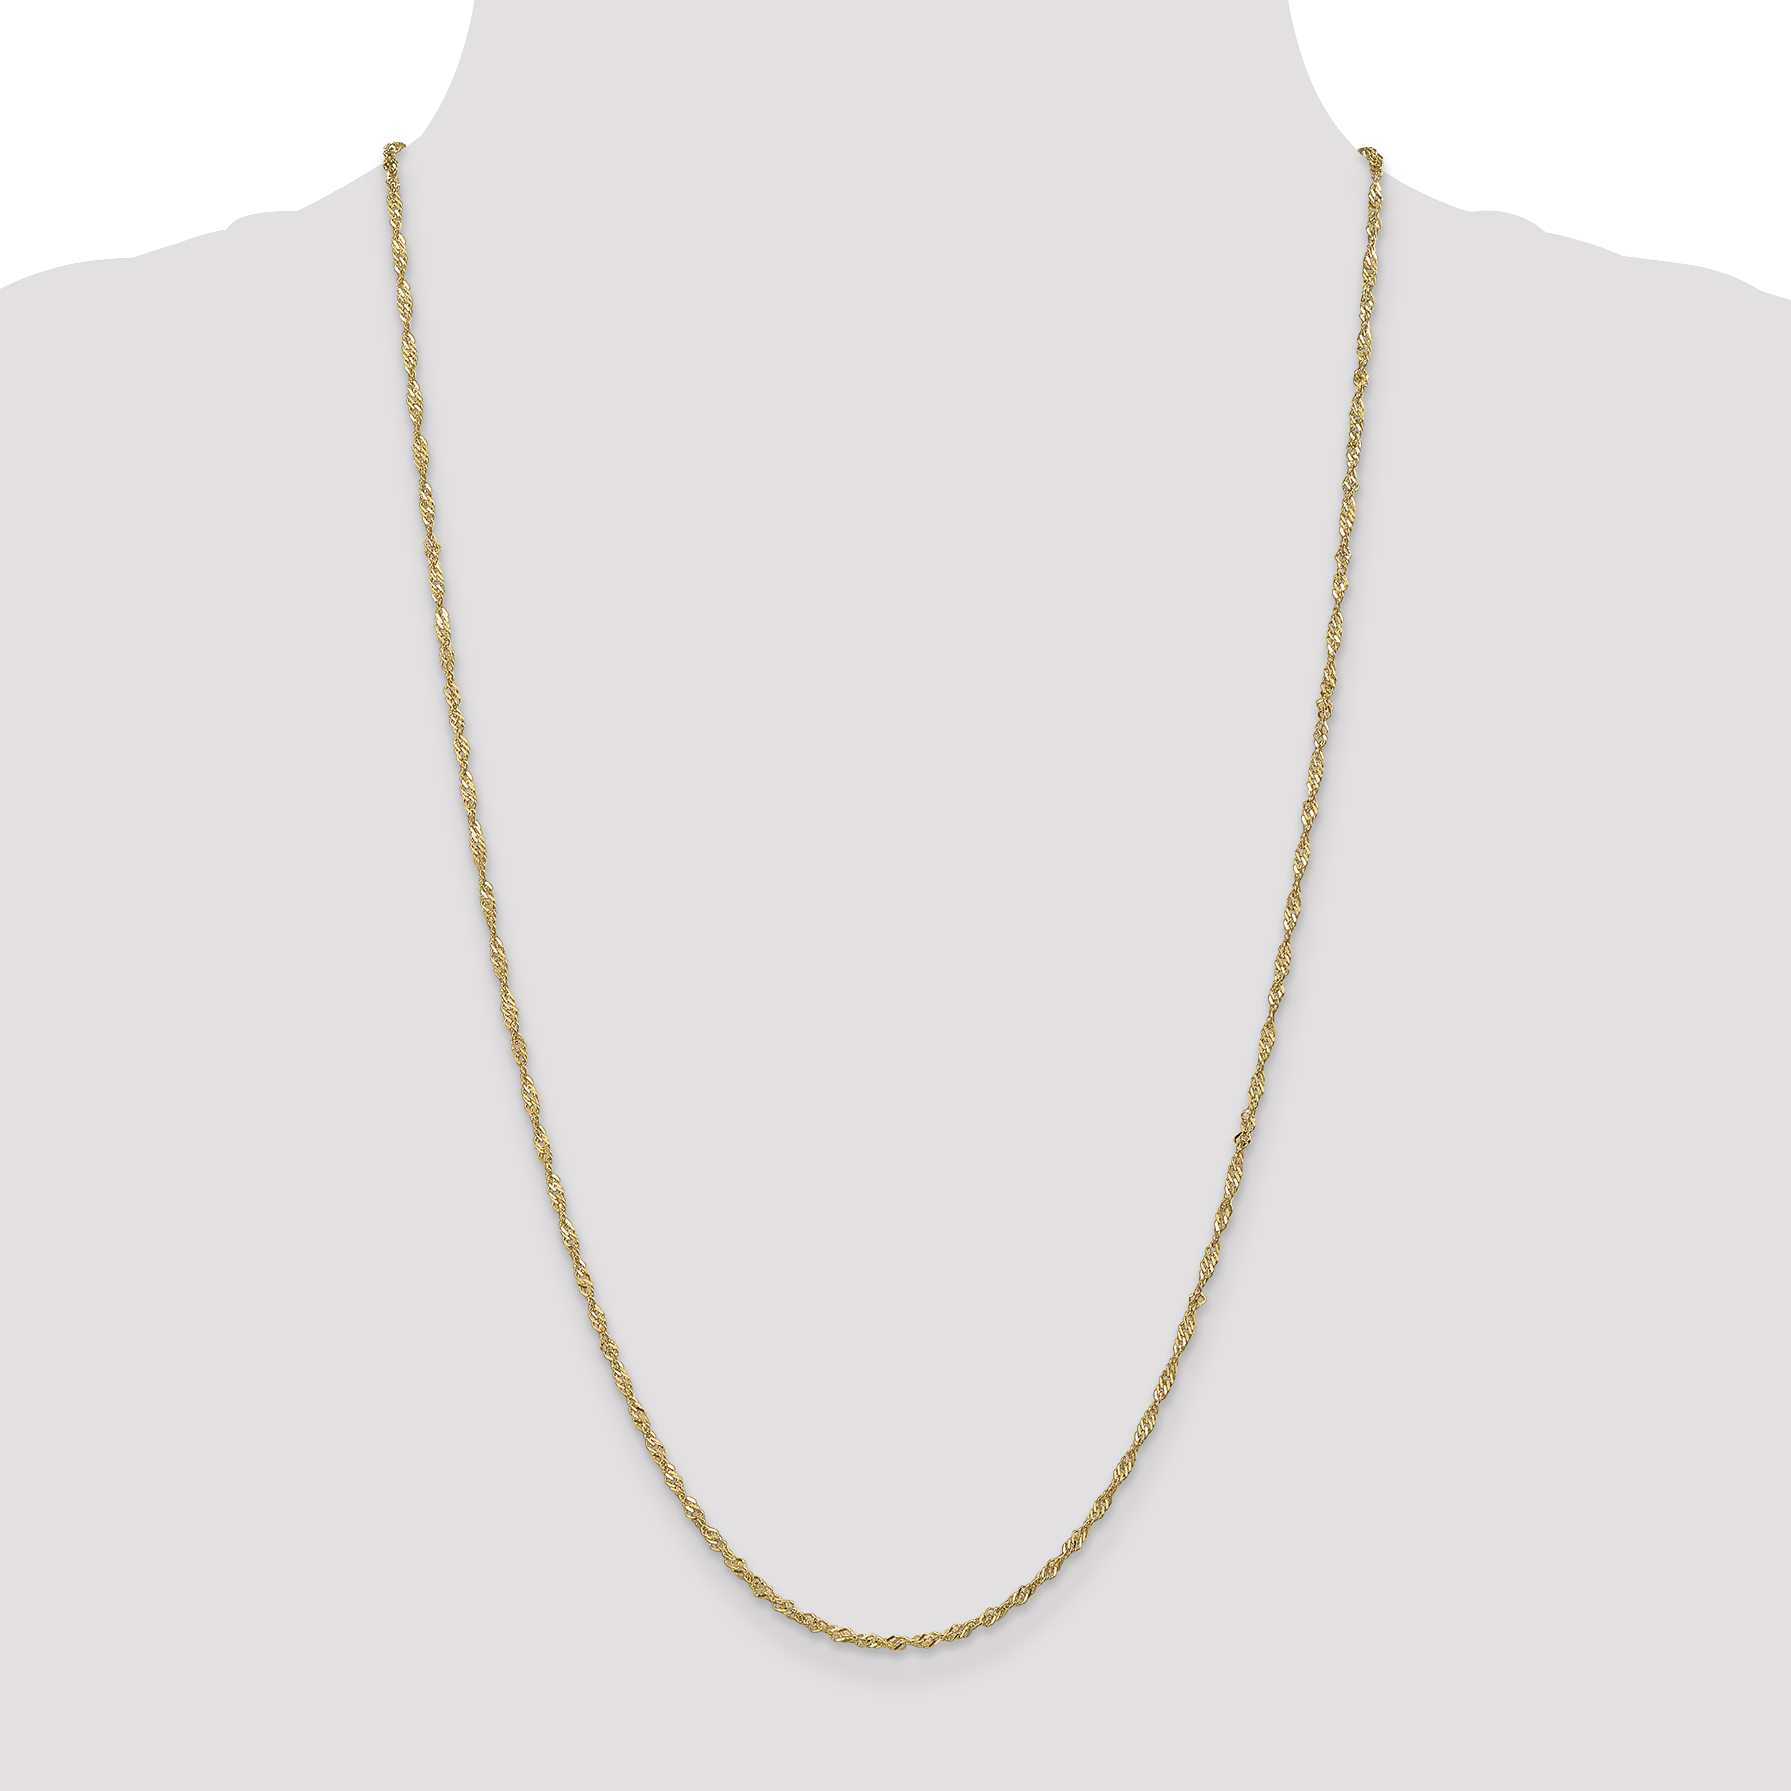 14K Yellow Gold 1.70mm Singapore Chain - image 1 of 5